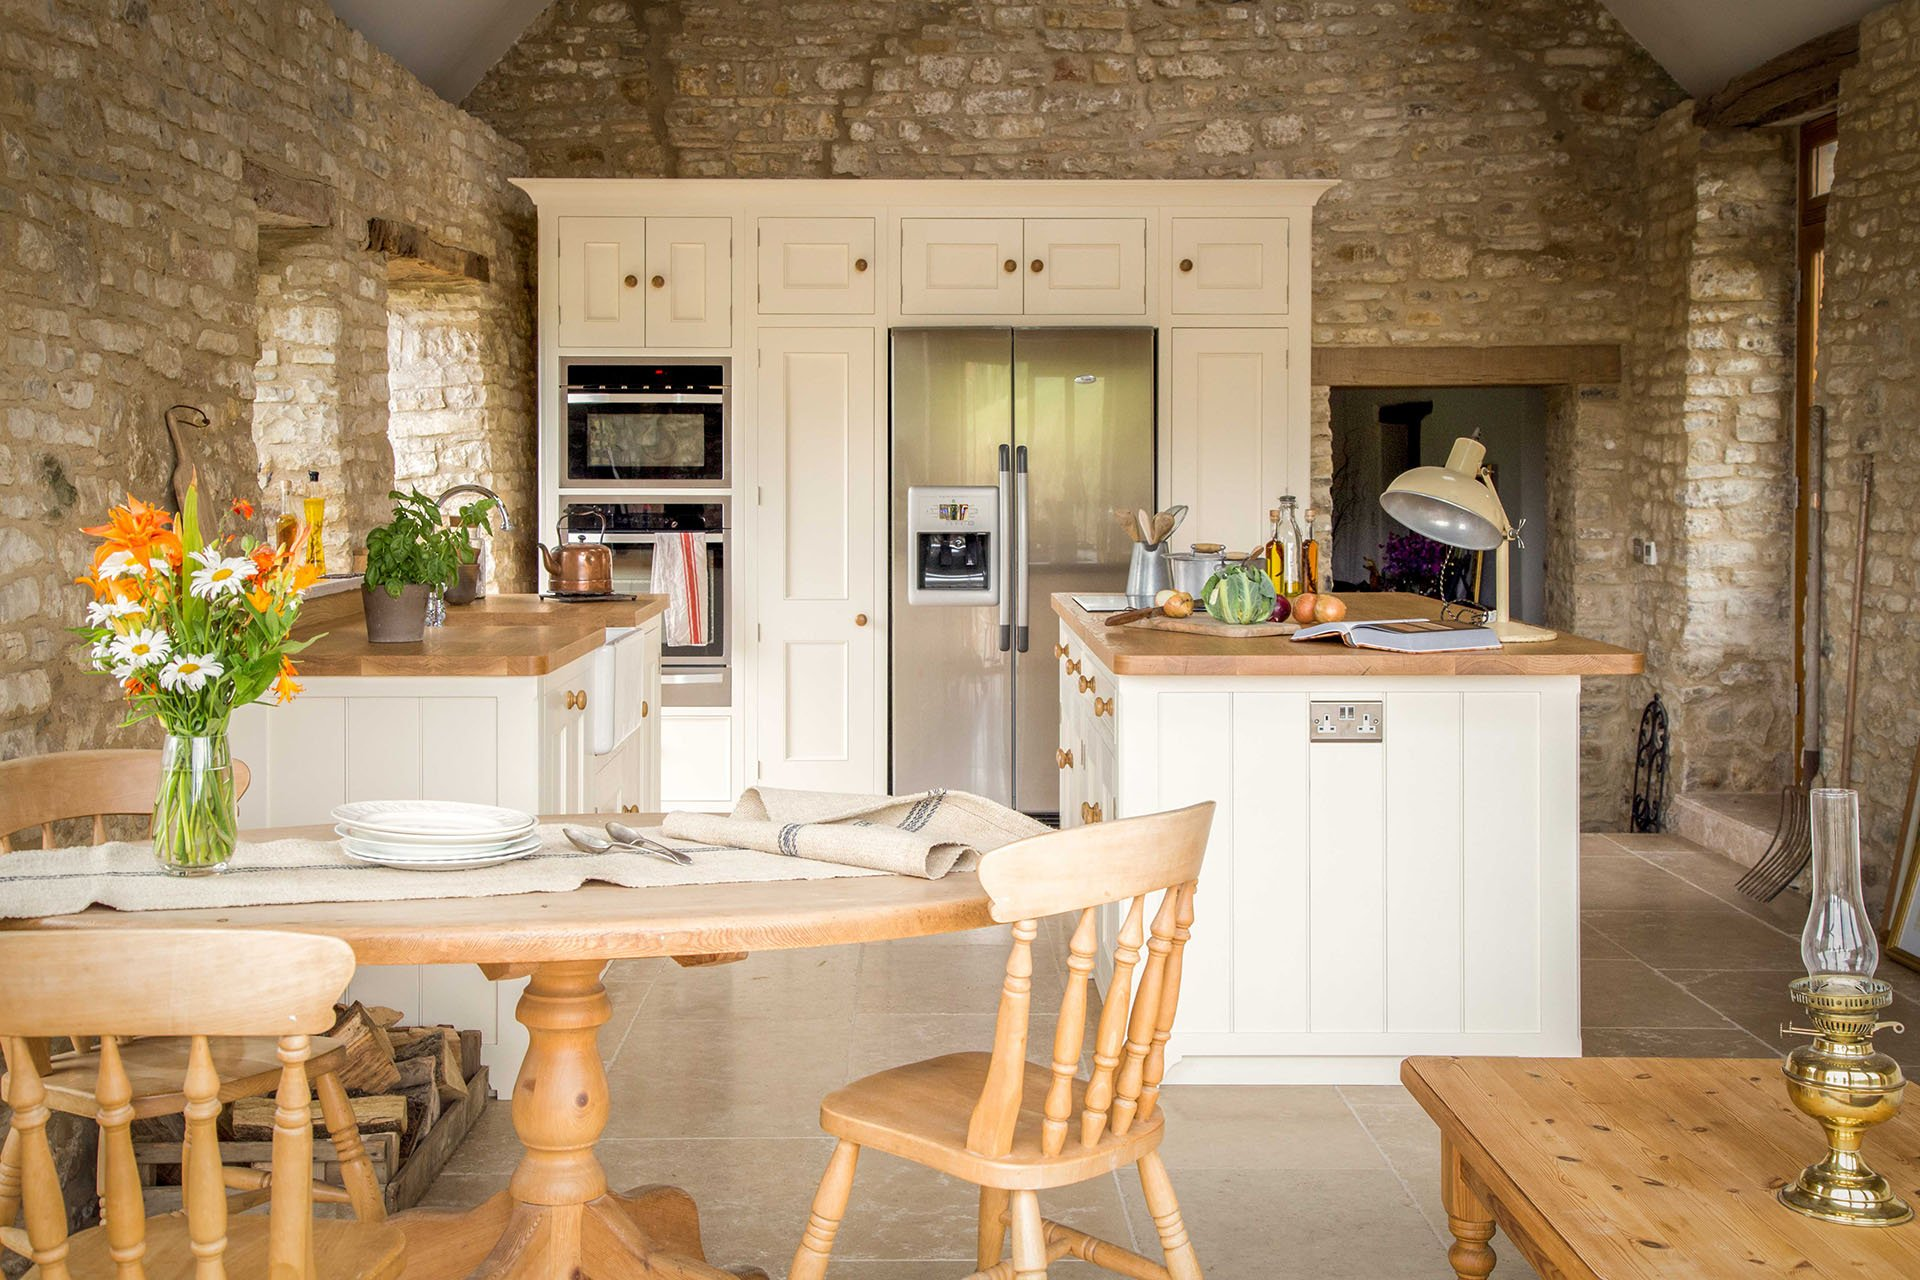 Traditional Country Kitchen with American fridge freezer and moulded door panels